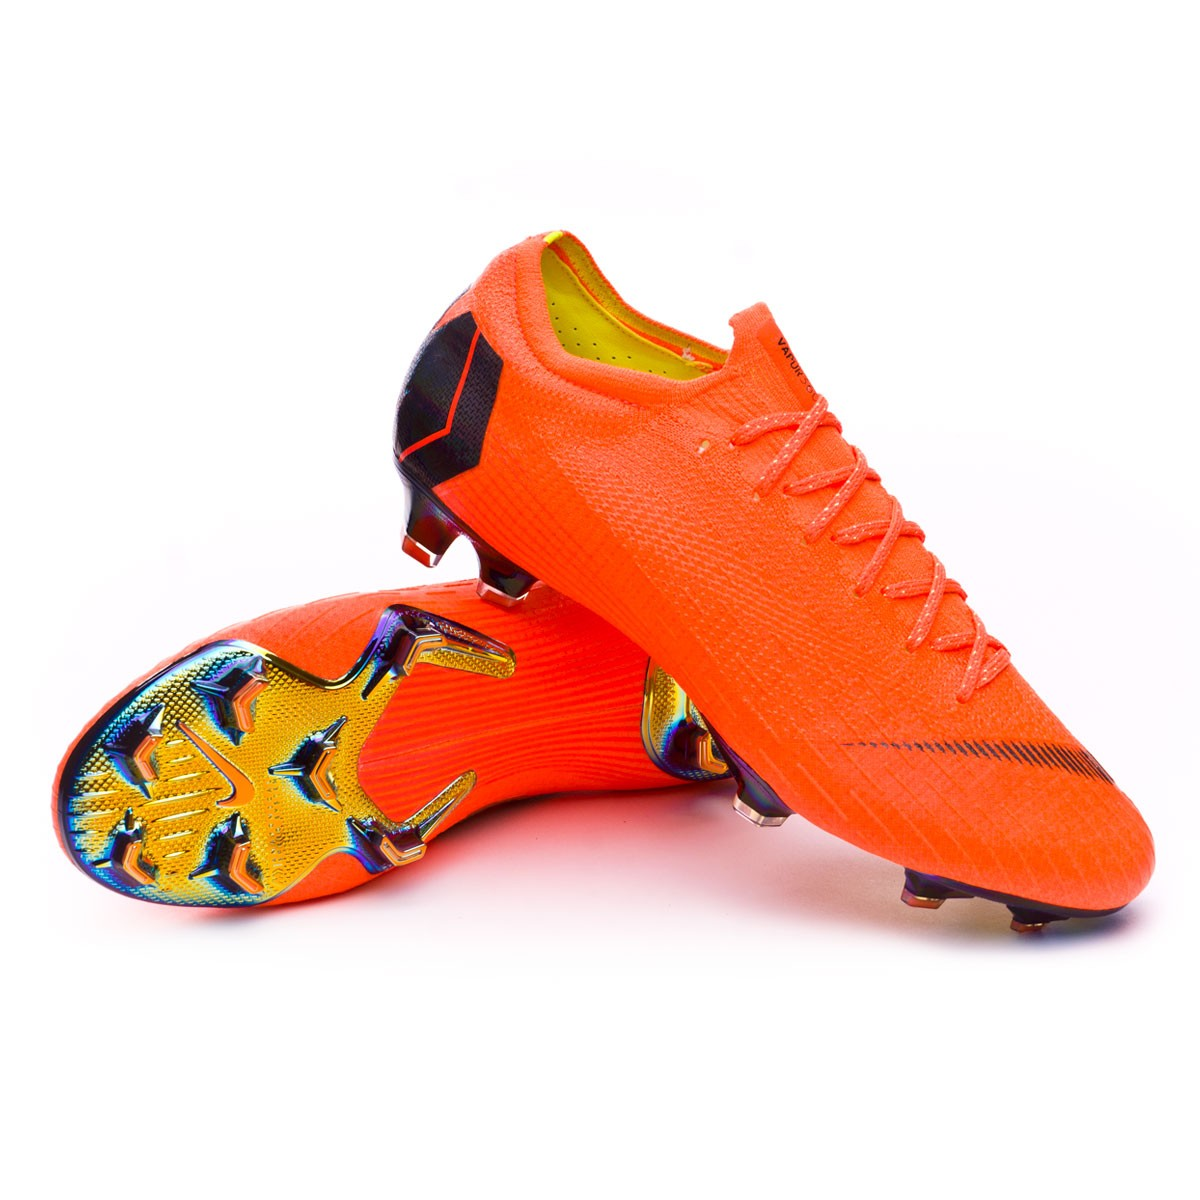 Boot Nike Mercurial Vapor XII Elite FG Total orange-Black-Volt ... beb7726d2